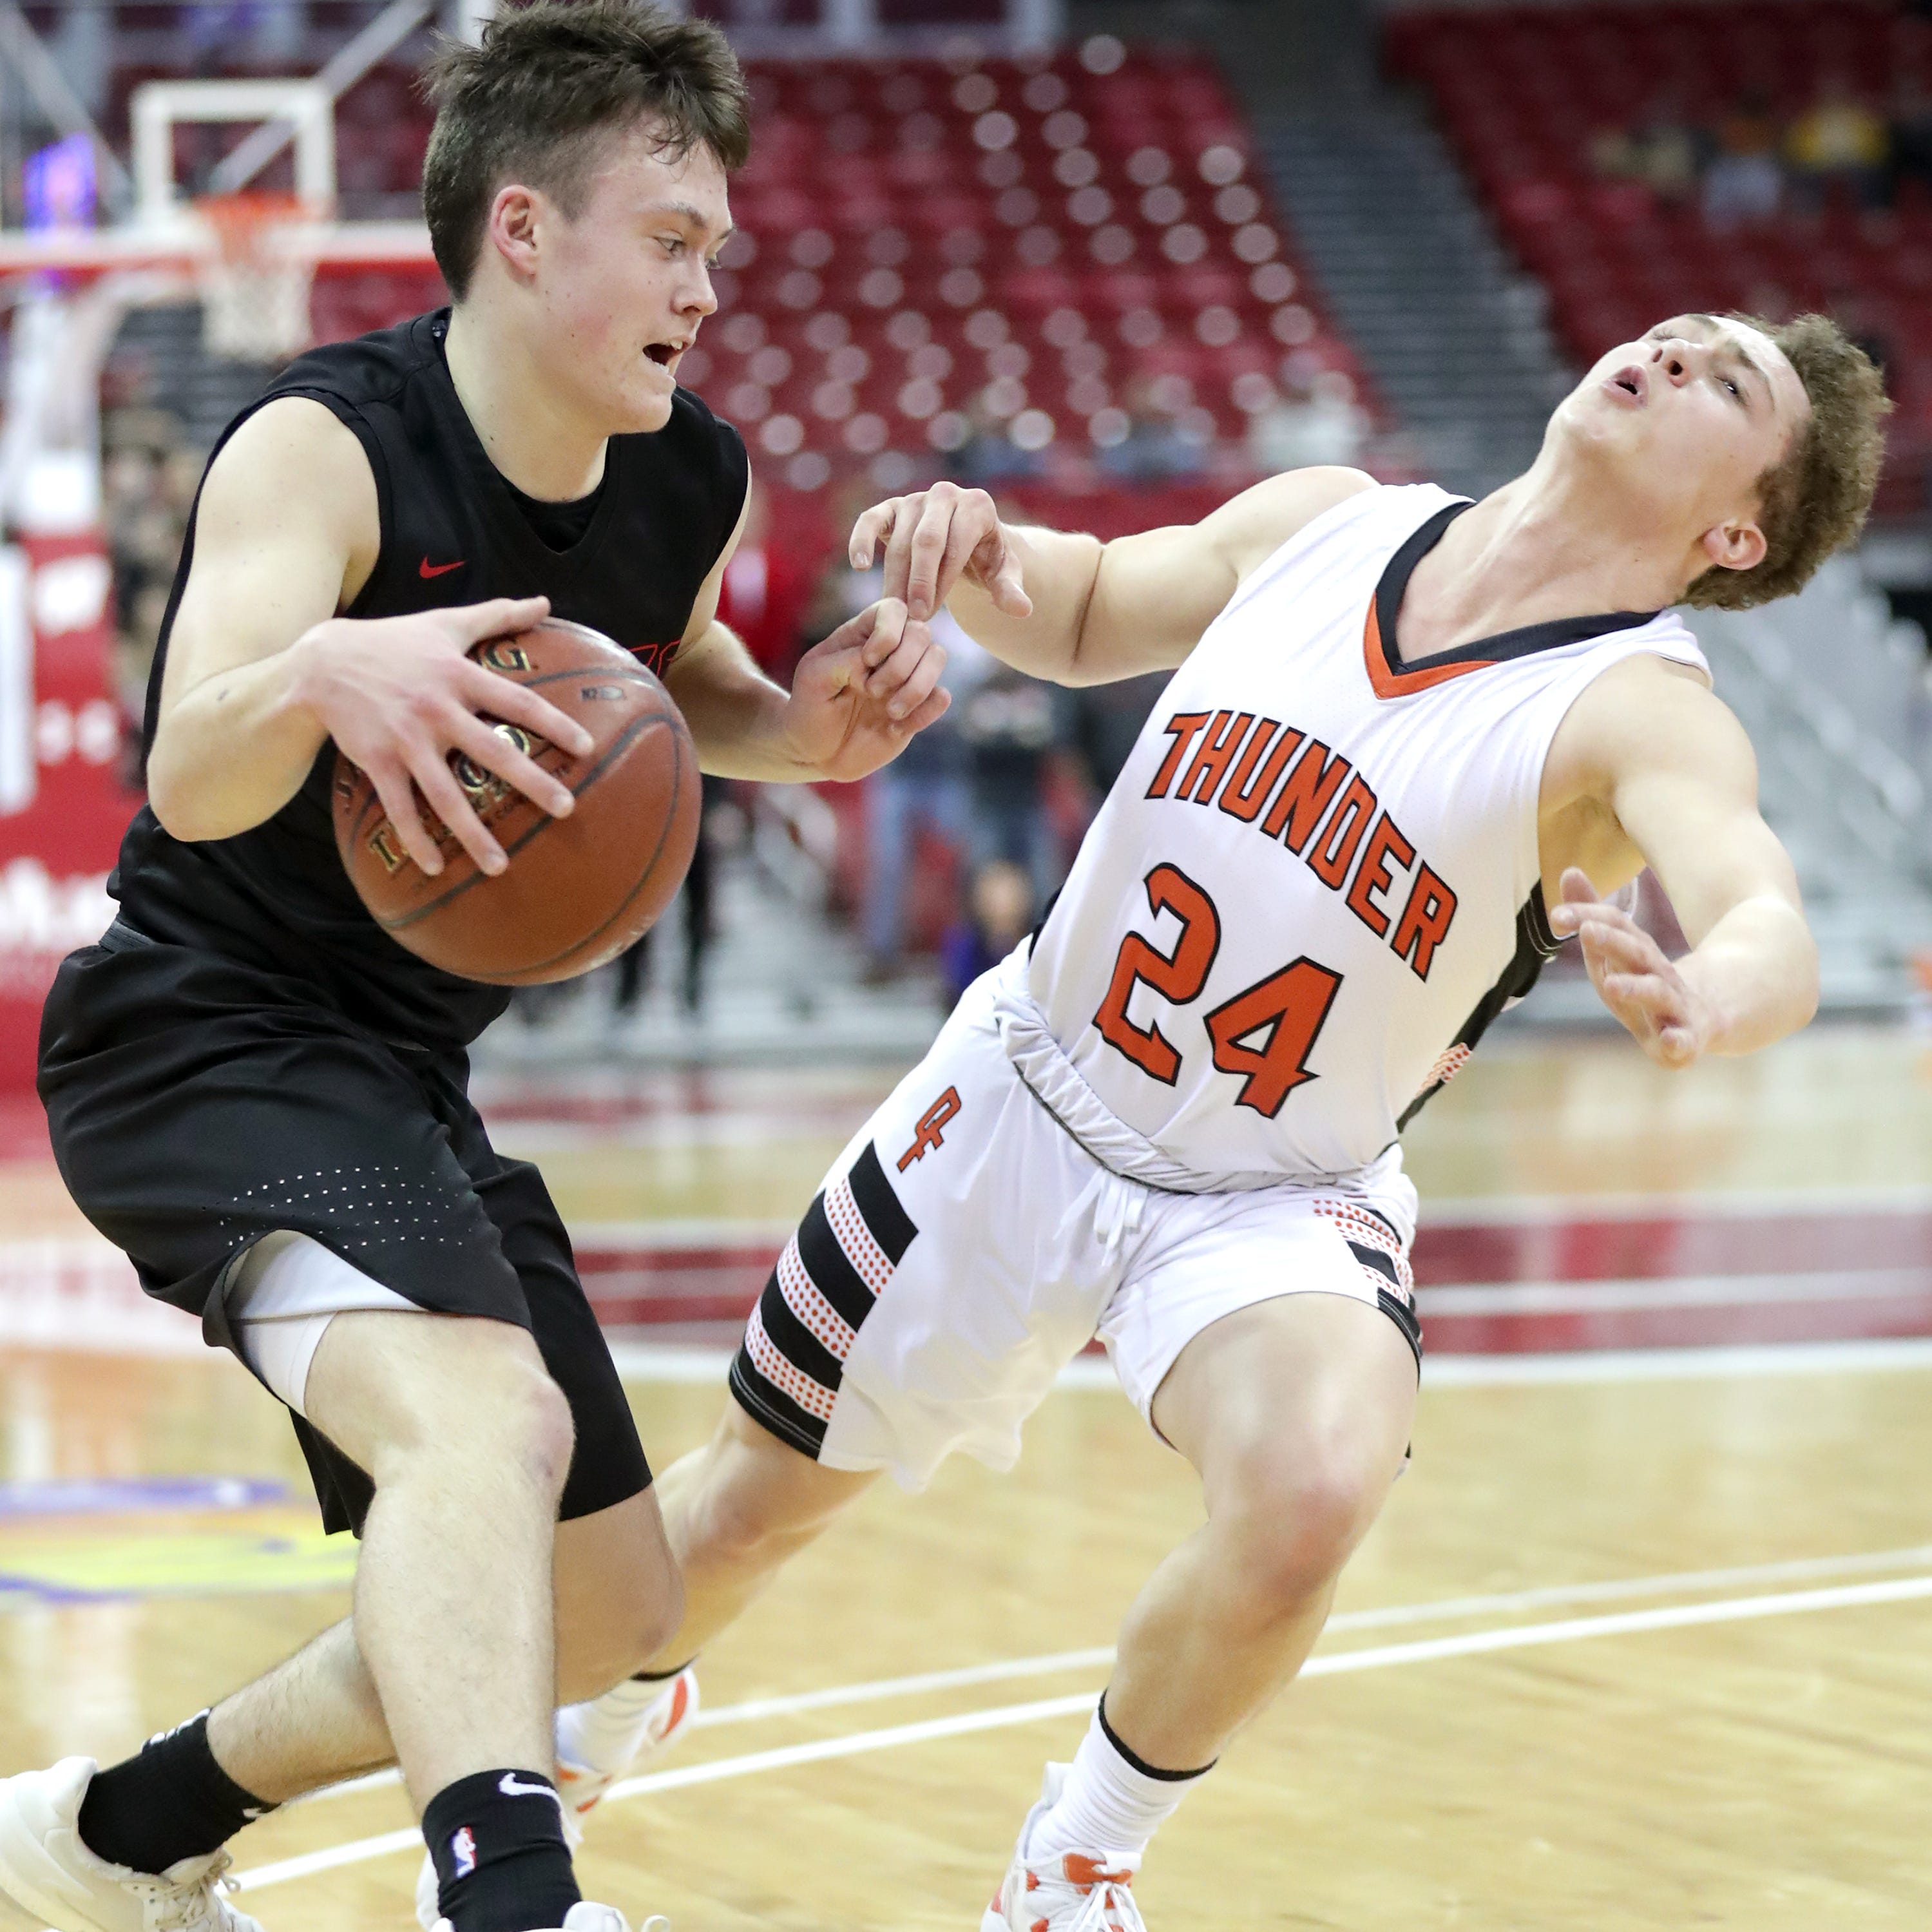 WIAA state basketball: Late bucket lifts Lourdes Academy past Osseo-Fairchild in semifinal